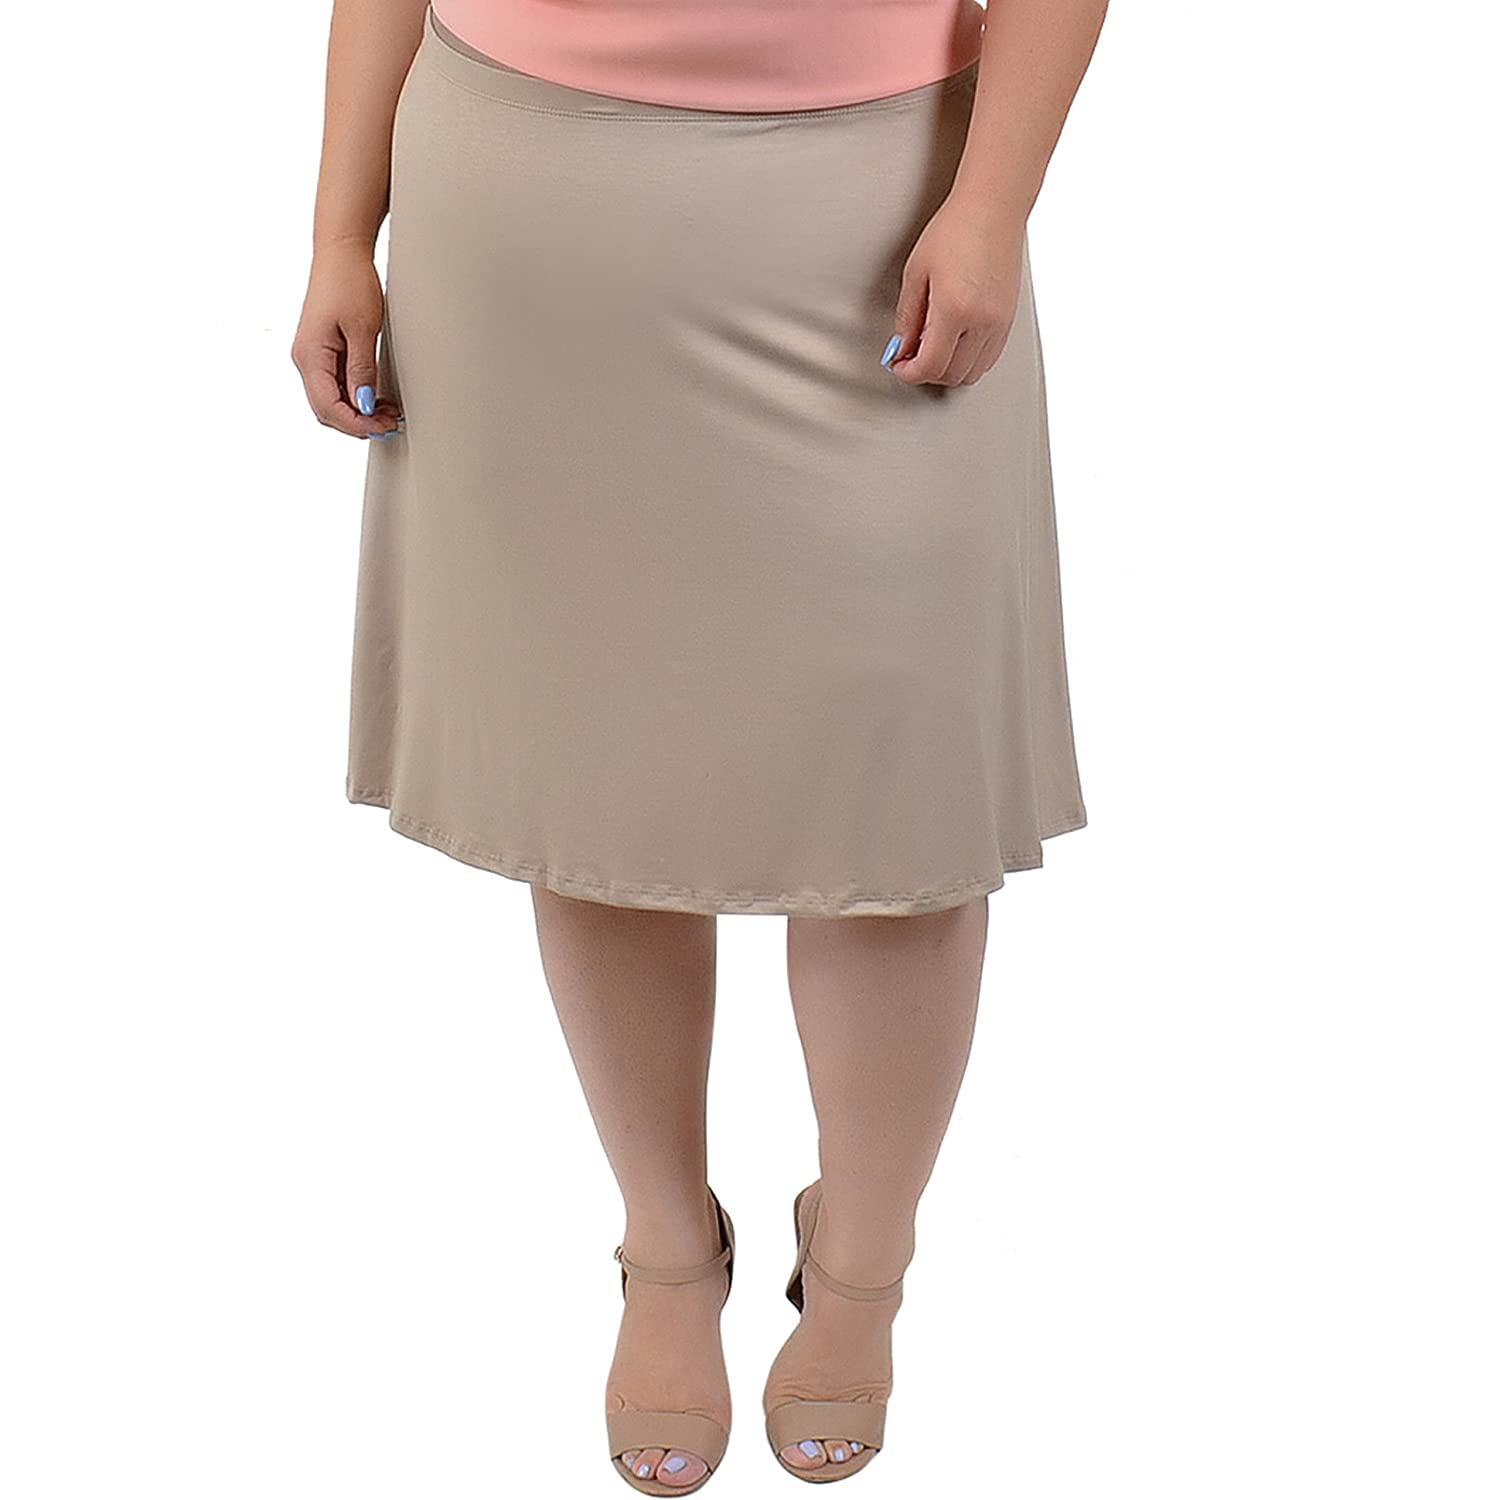 4b561598b40 Stretch is Comfort Women s Plus Size A-Line Knee Length Light Weight Skirt  at Amazon Women s Clothing store